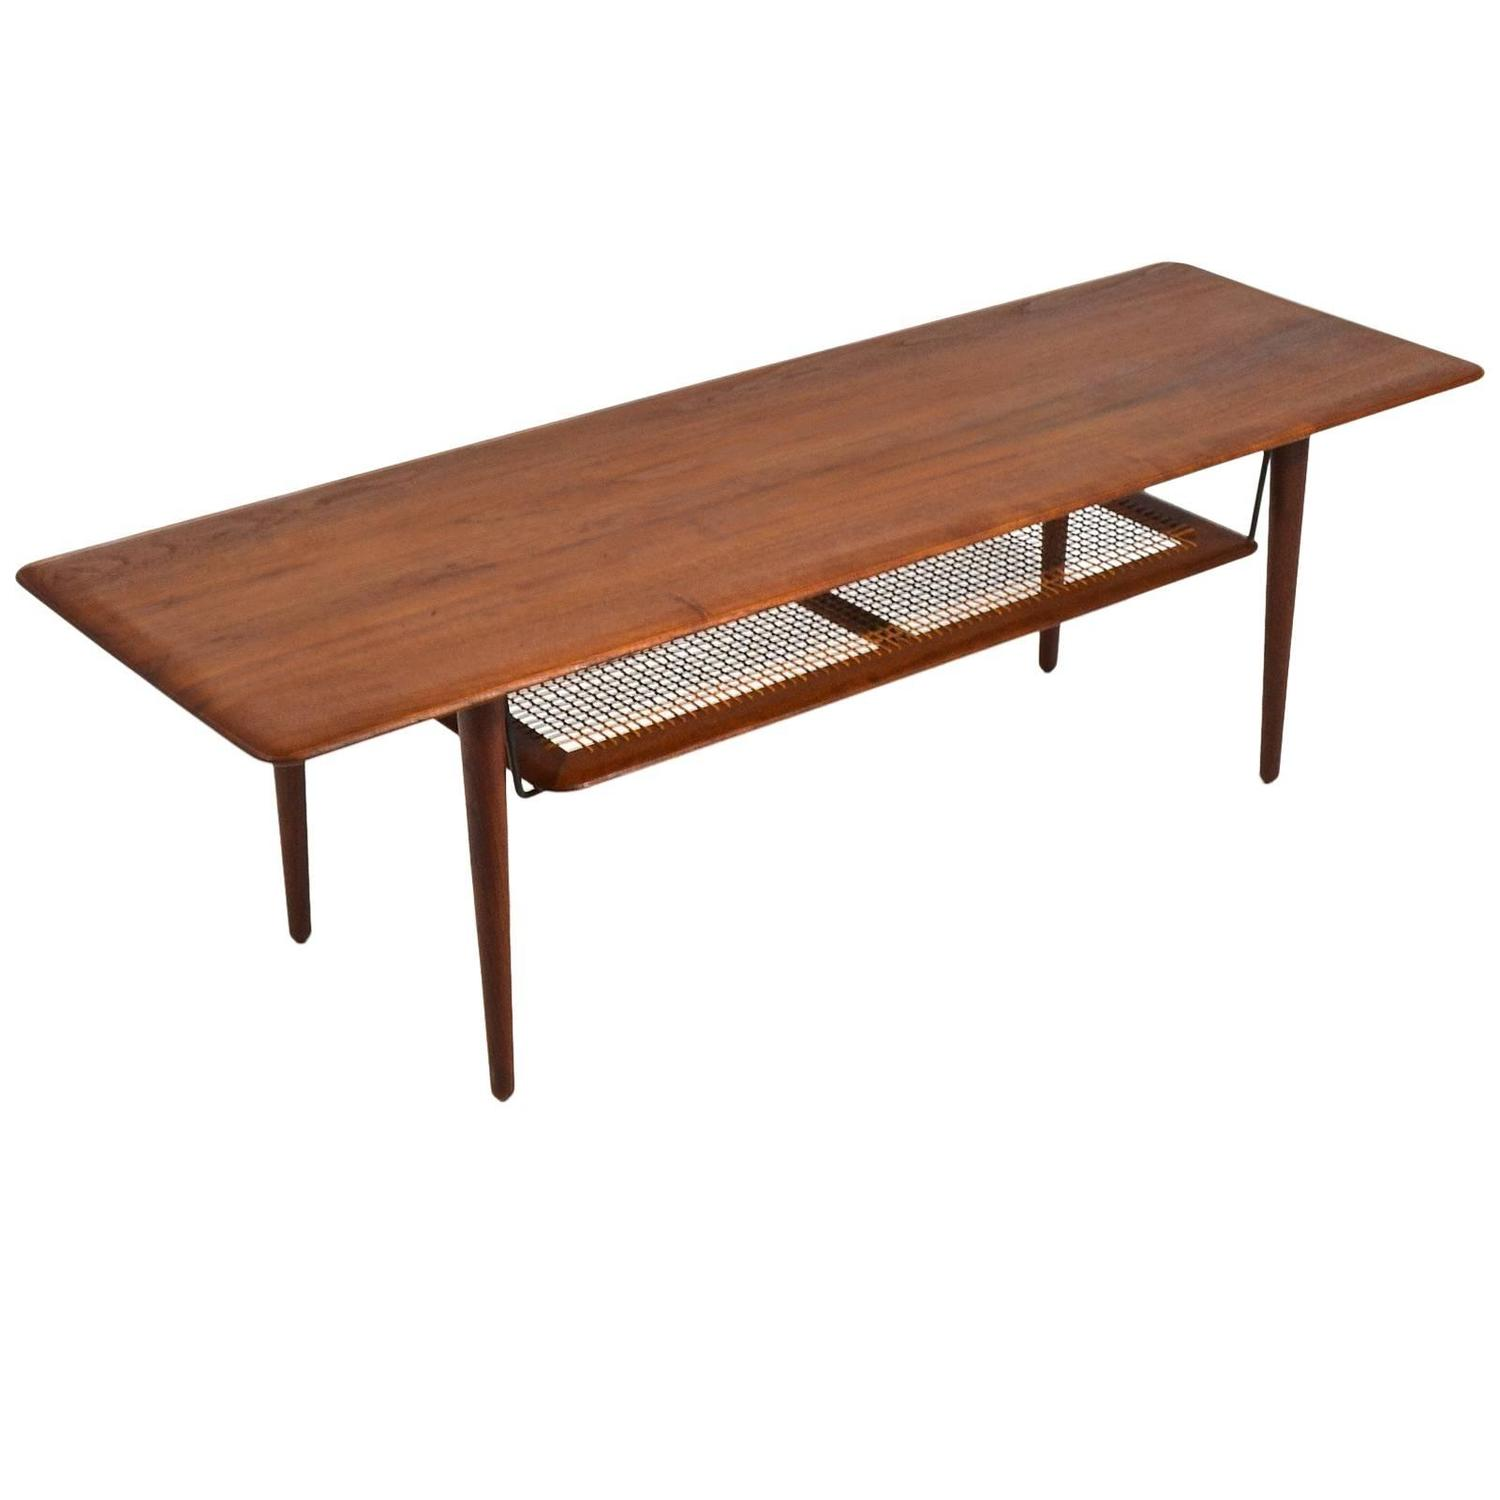 Peter Hvidt And Orla Mølgaard Nielsen Coffee Table With Cane Shelf For At 1stdibs